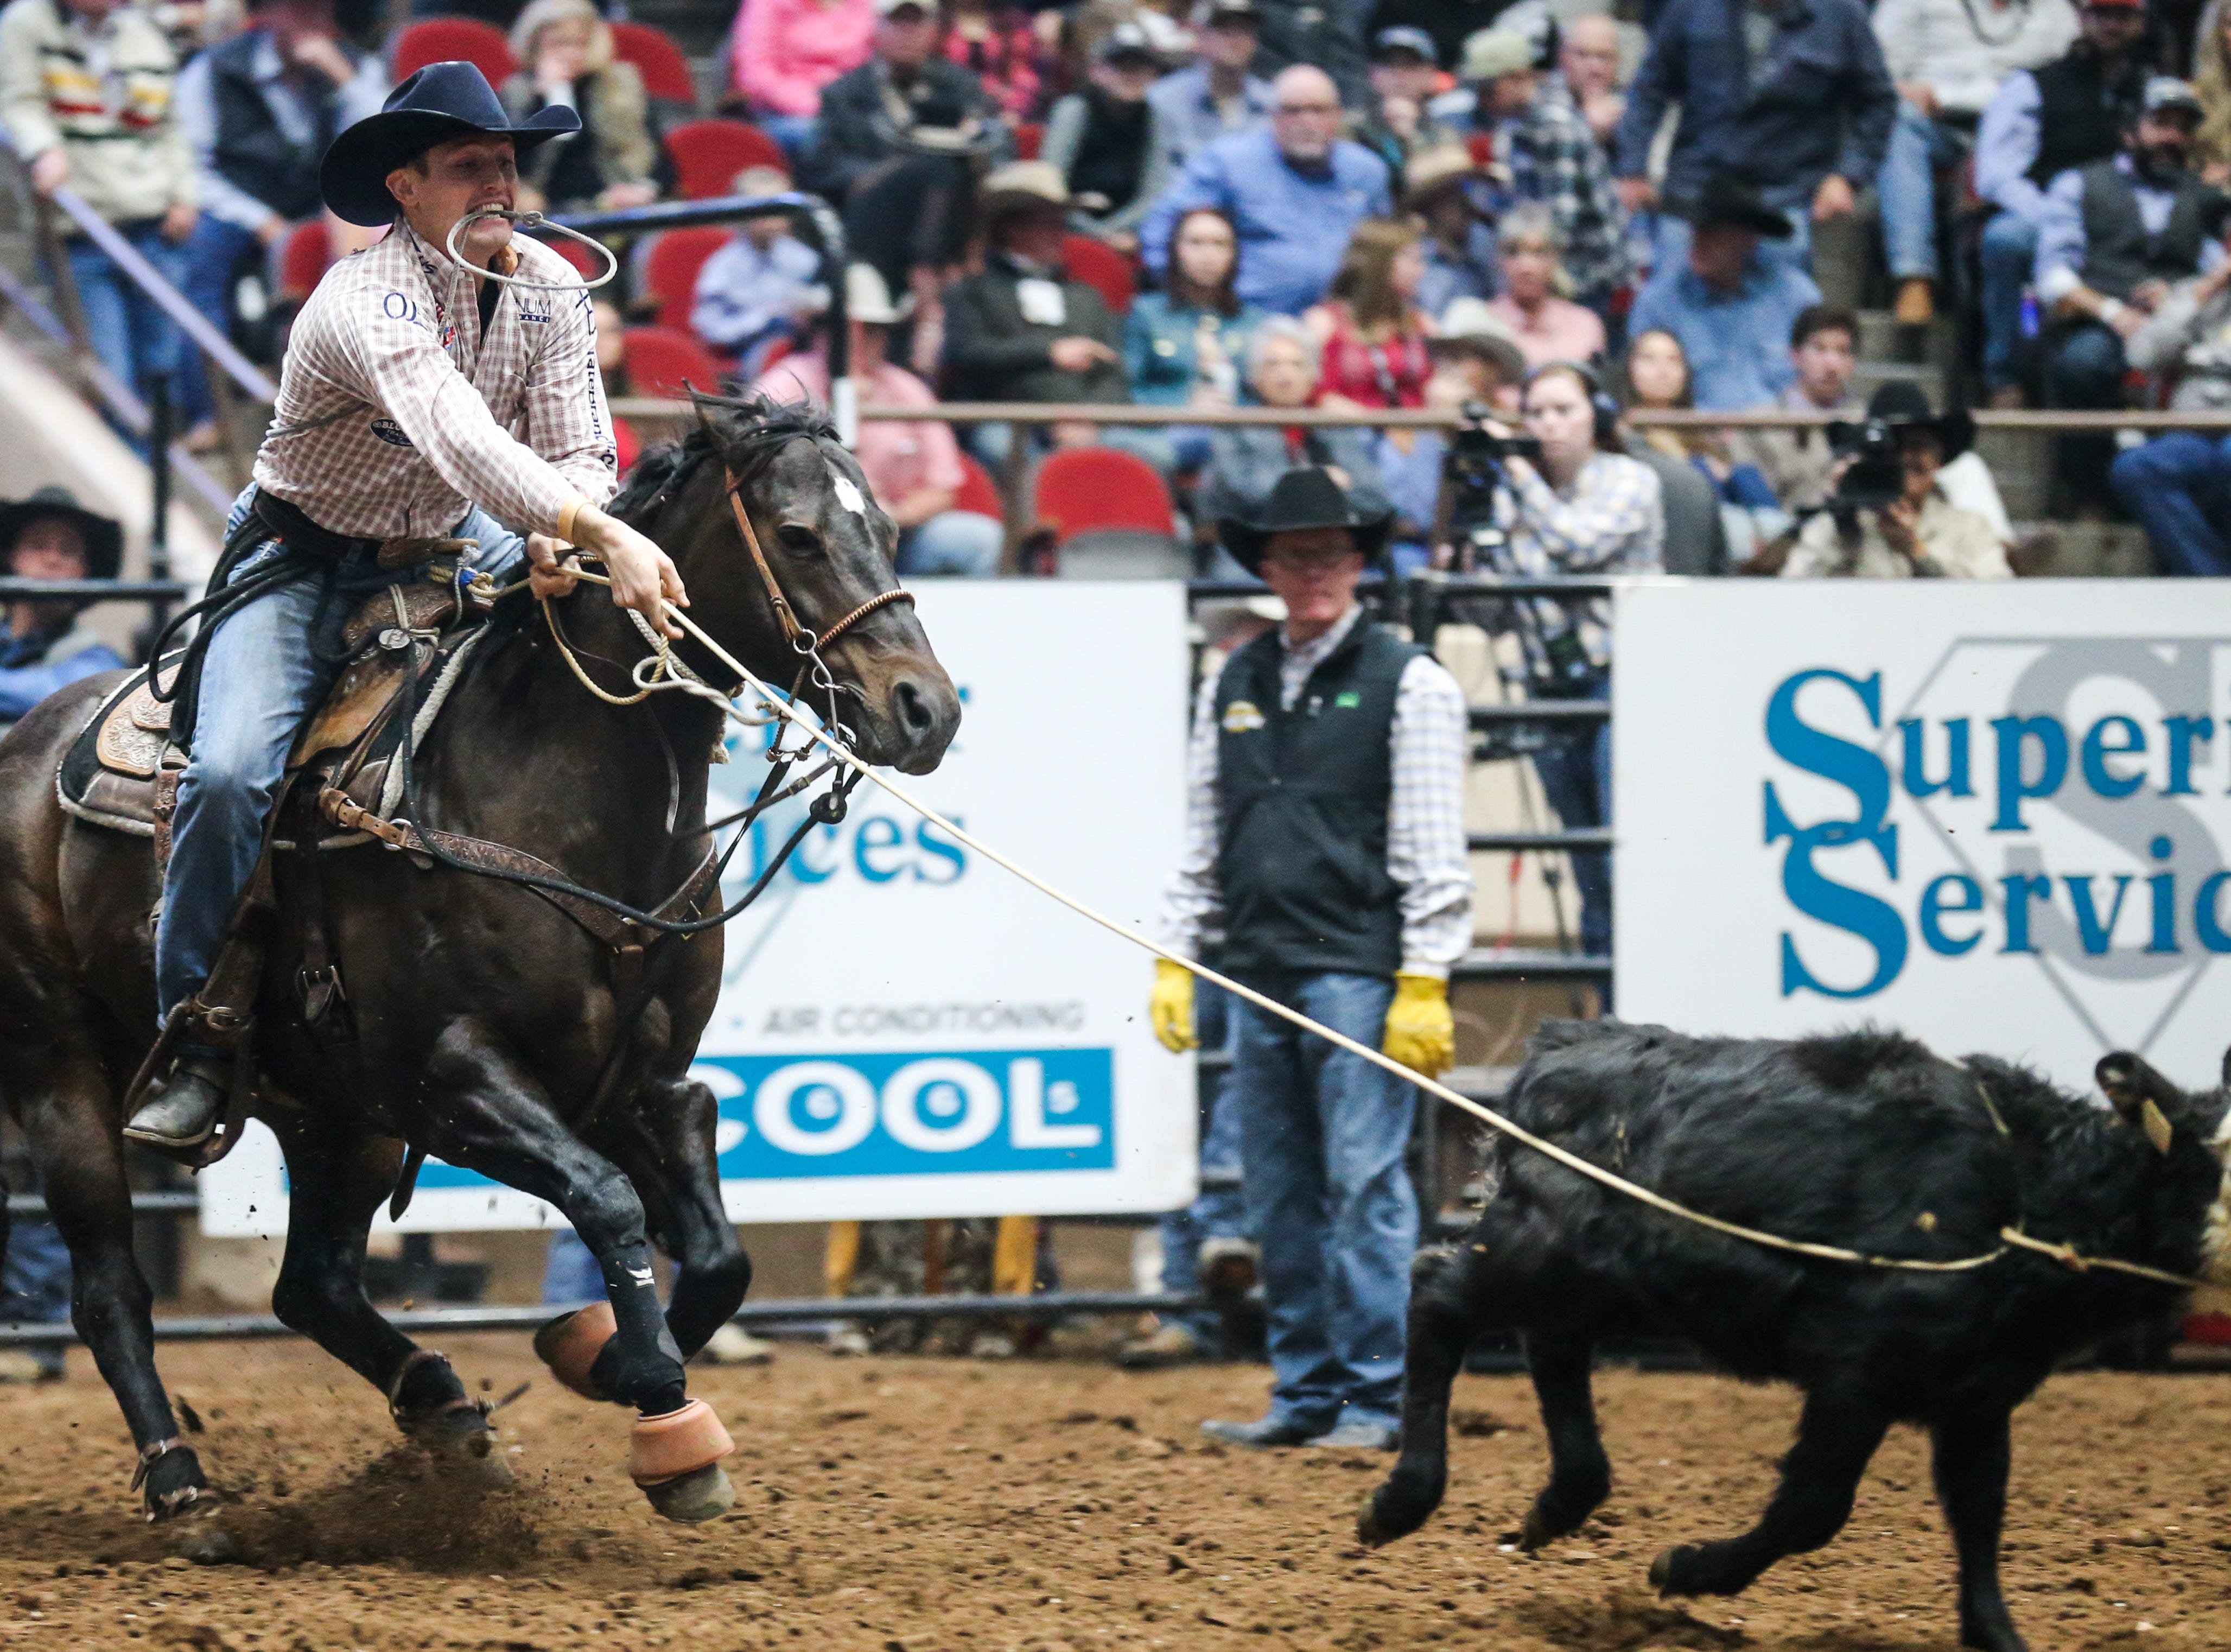 Tuff Cooper rides out to tie down a calf during the 3rd performance of the San Angelo Stock Show & Rodeo Saturday, Feb. 2, 2019, at Foster Communications Coliseum.